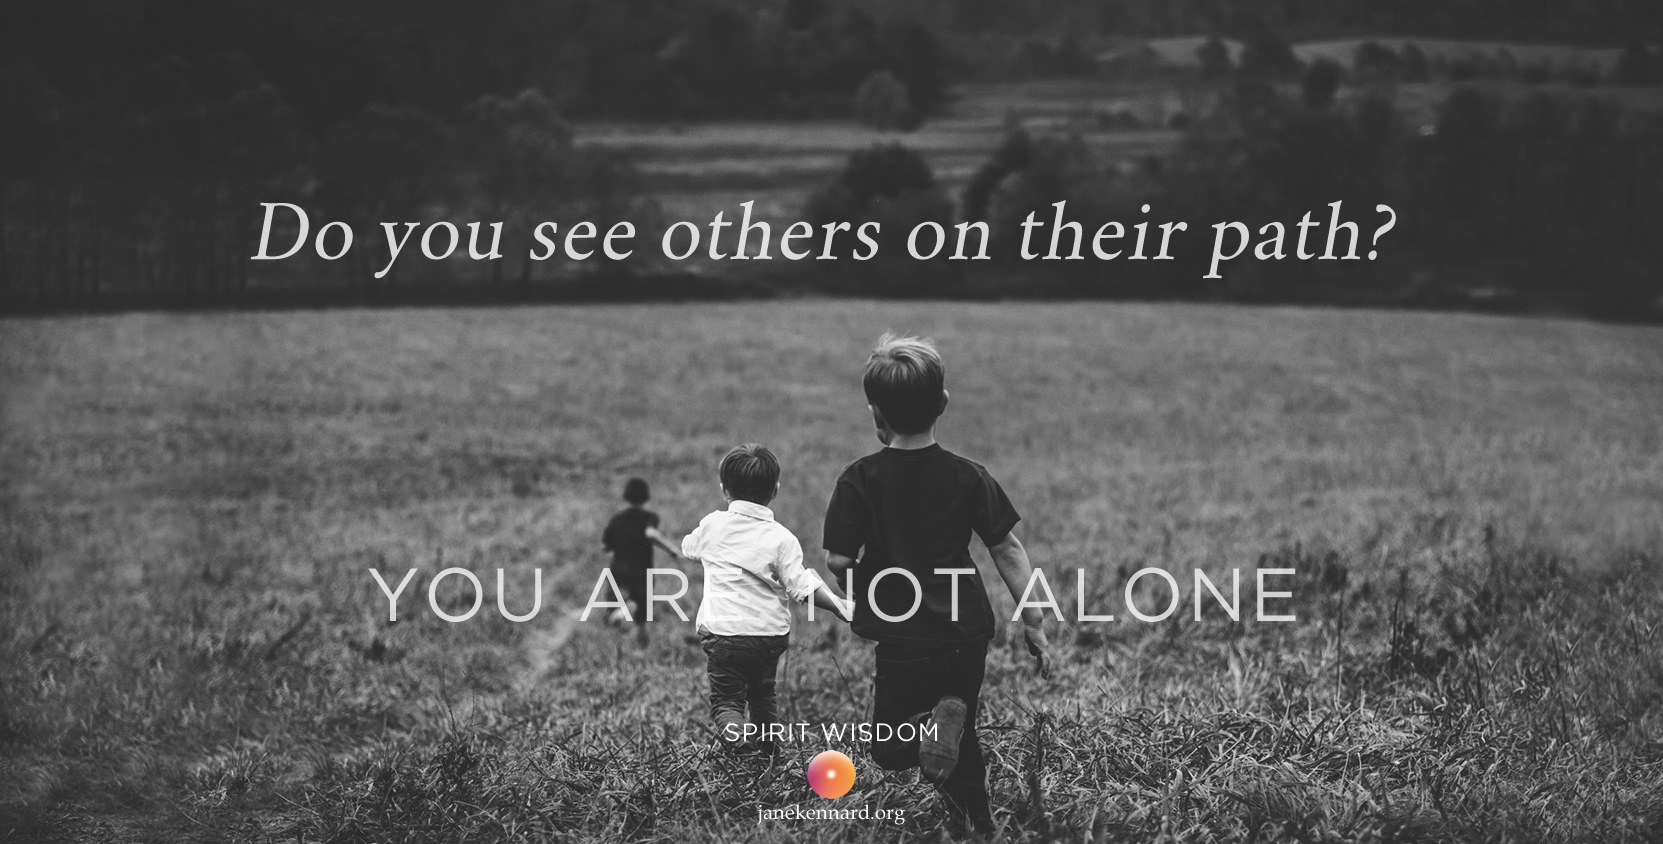 do-you-see-others-on-their-path-jane-kennard-spirit-wisdom-you-are-not-alone-unsplash-photo-jordan-whitt-54480-1663x844